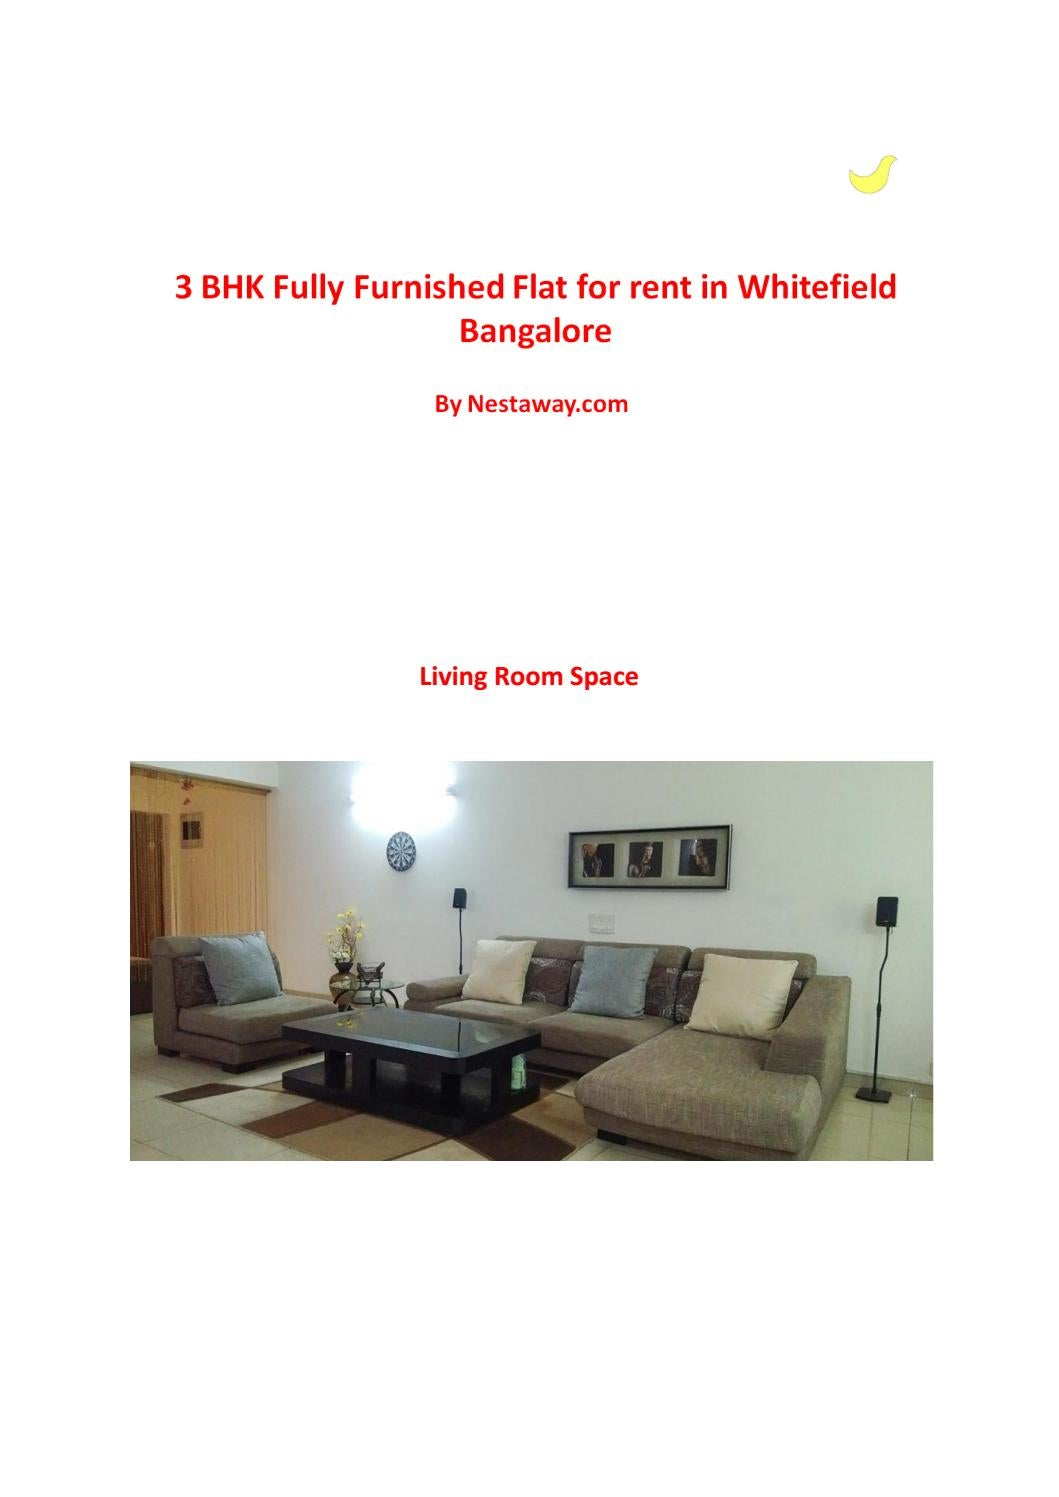 3 Bhk Fully Furnished Flat For Rent In Whitefield Bangalore By Nestaway Issuu